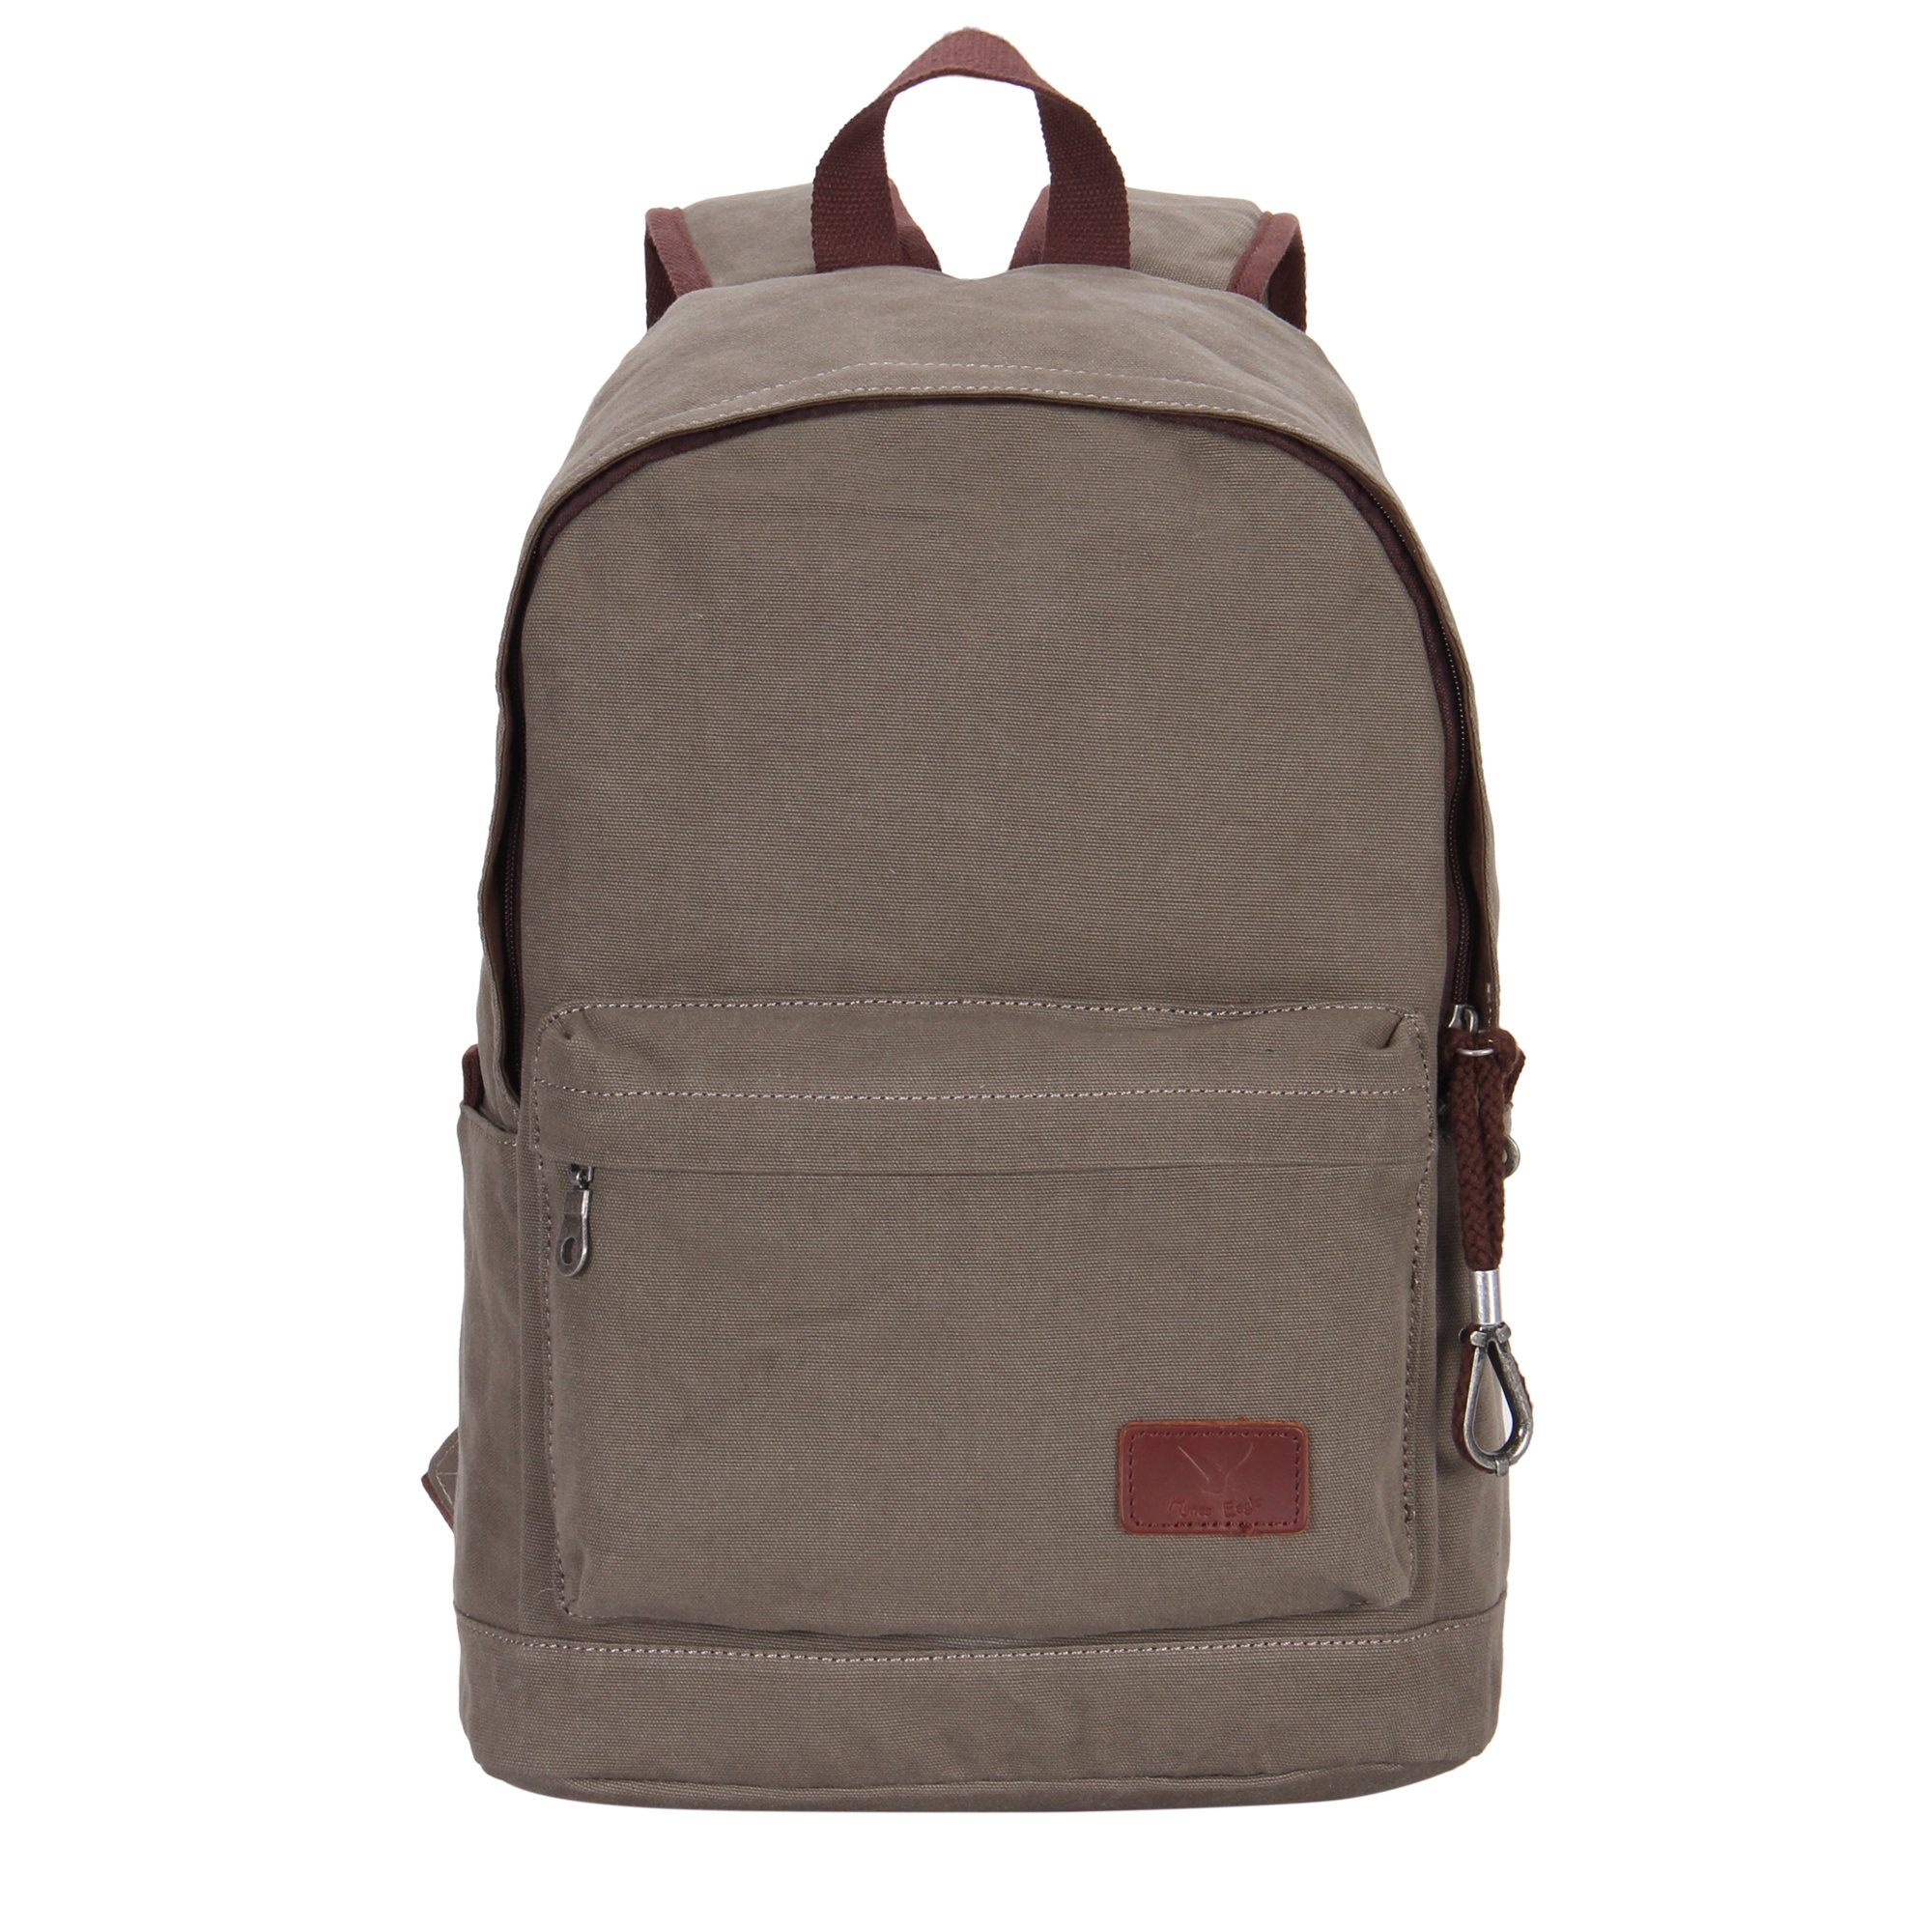 Hynes Eagle Unisex Casual Daypack Canvas School Bag Travel Backpack 23 Liters Army Green